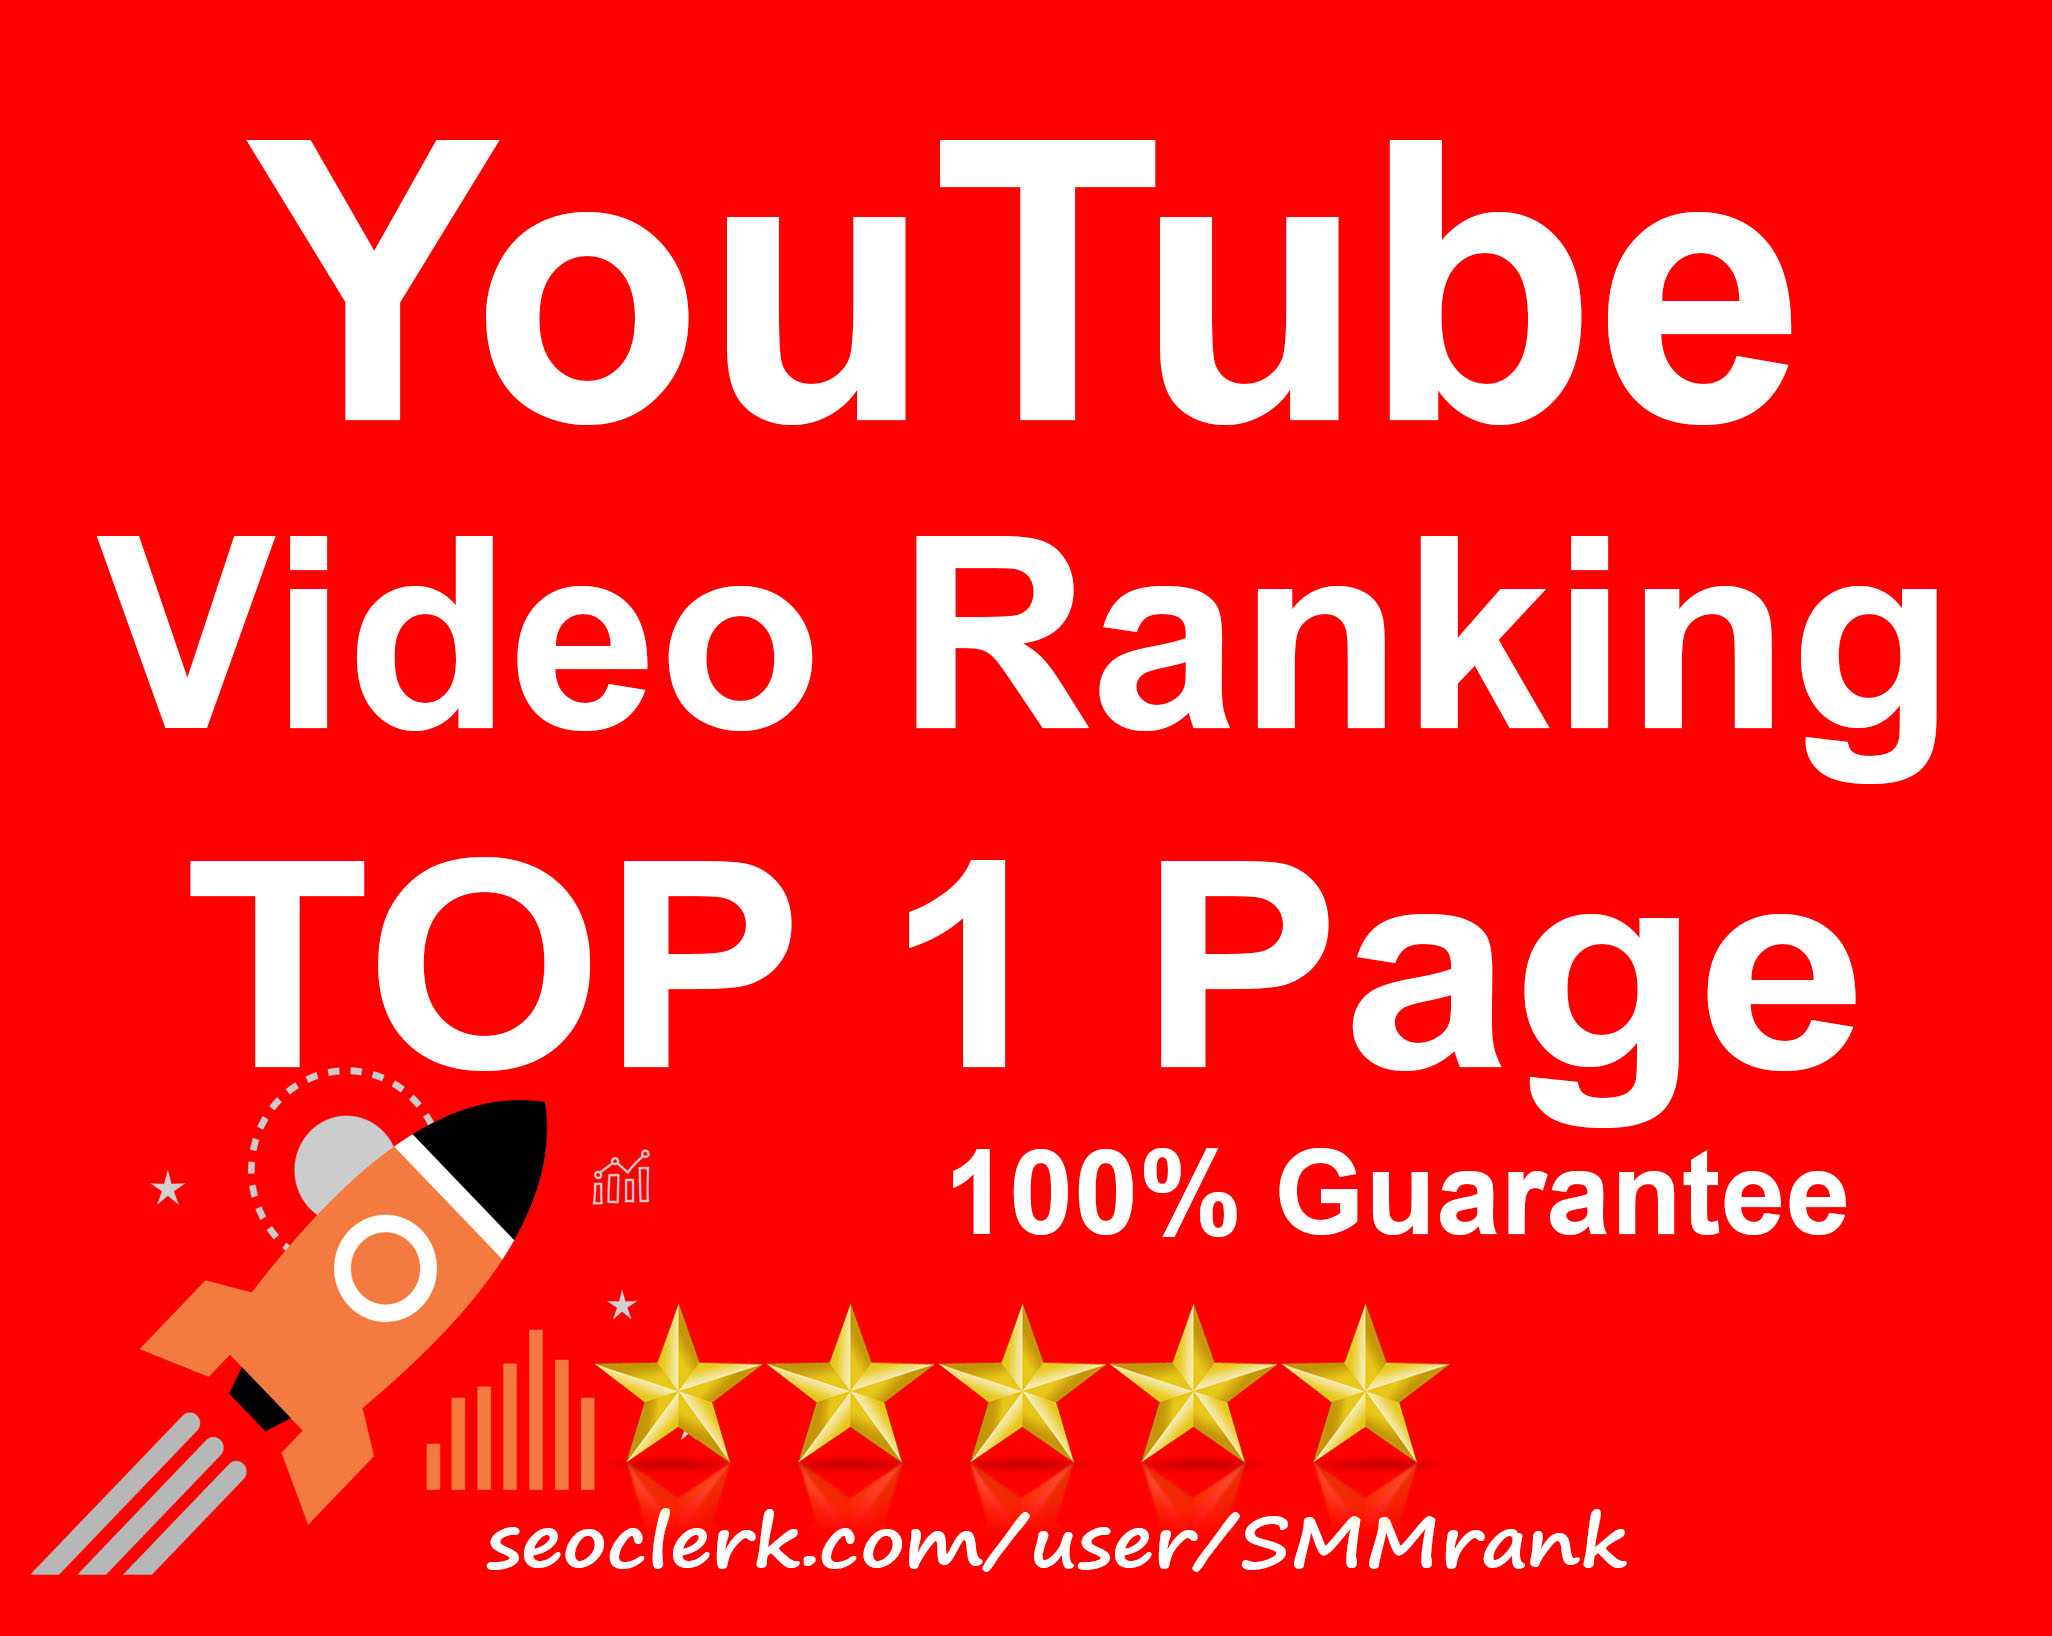 Boost Video Ranking Page 1 On YouTube - Best Result 2019